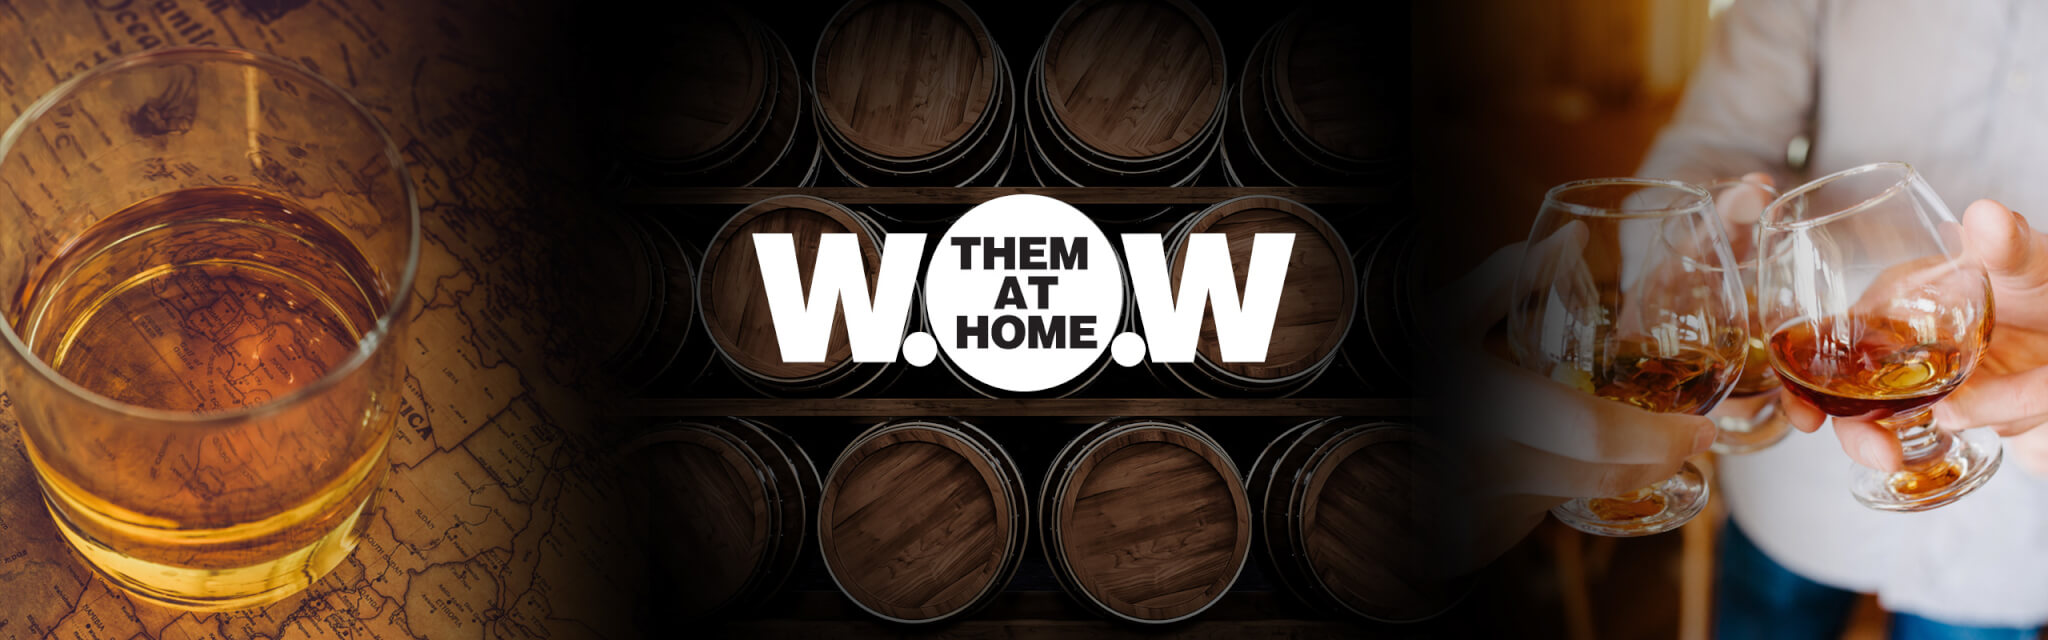 WOW THEM AT HOME - THE WORLD WHISKY DAY EXPERIENCE